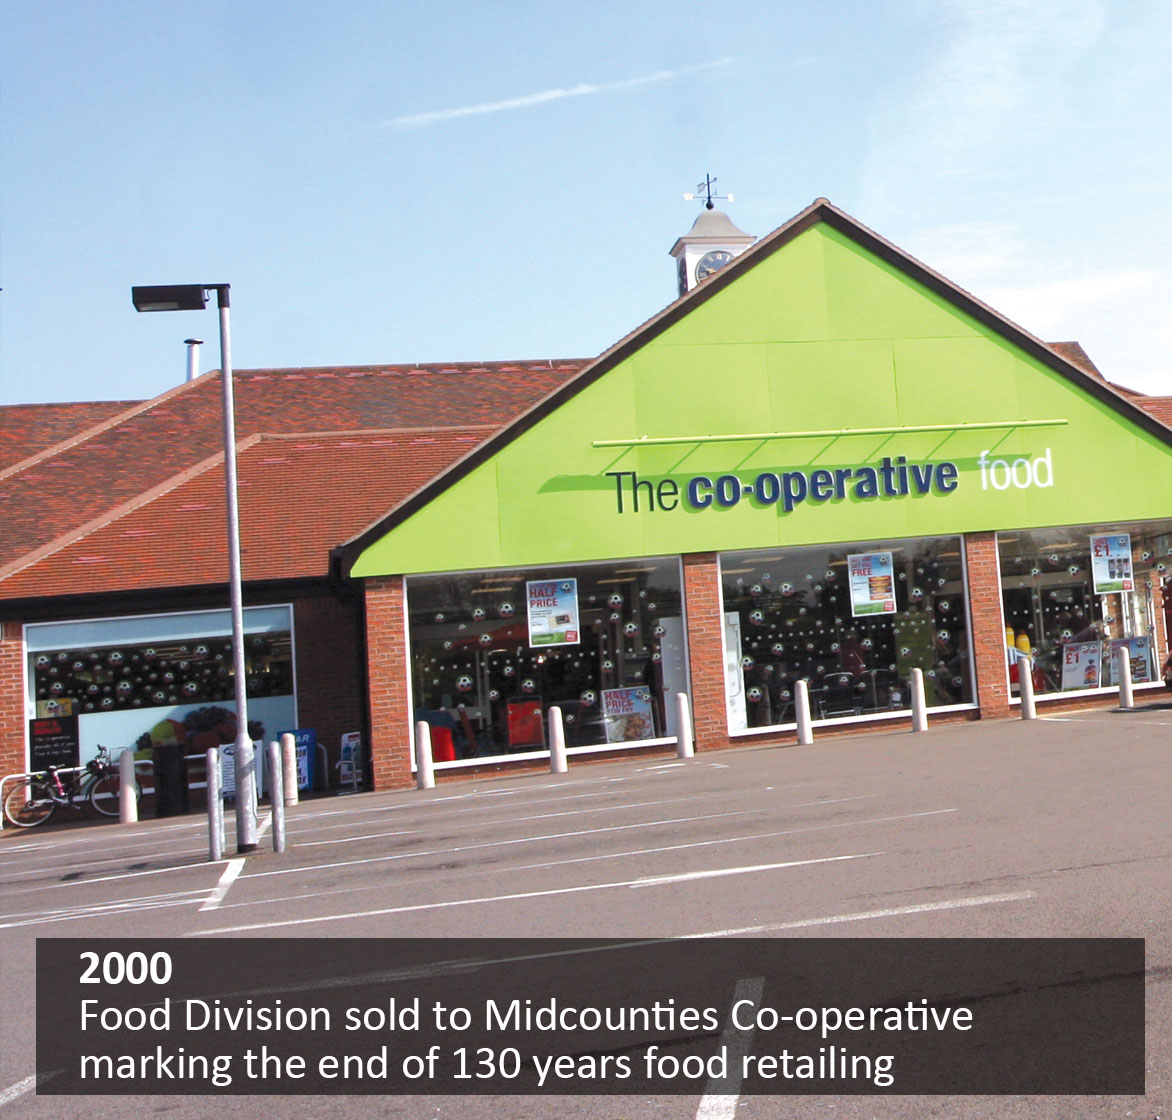 Food Division sold to Midcounties Co-operative marking the end of 130 years food retailing